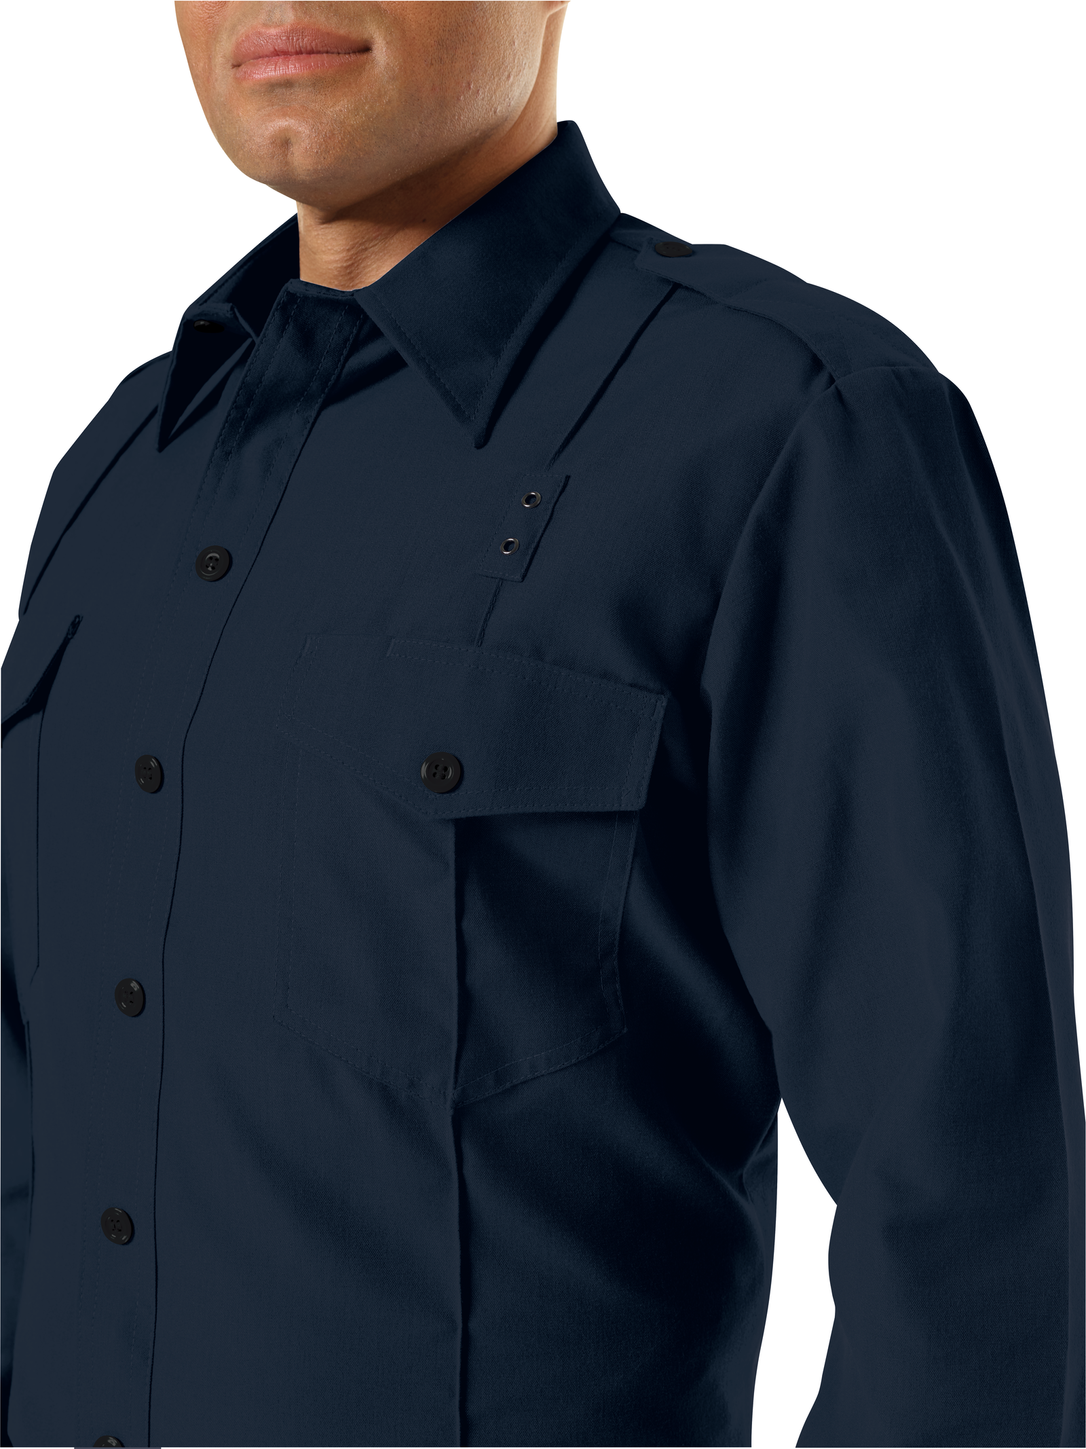 workrite-fr-chief-shirt-fsc0-classic-long-sleeve-midnight-navy-example.png